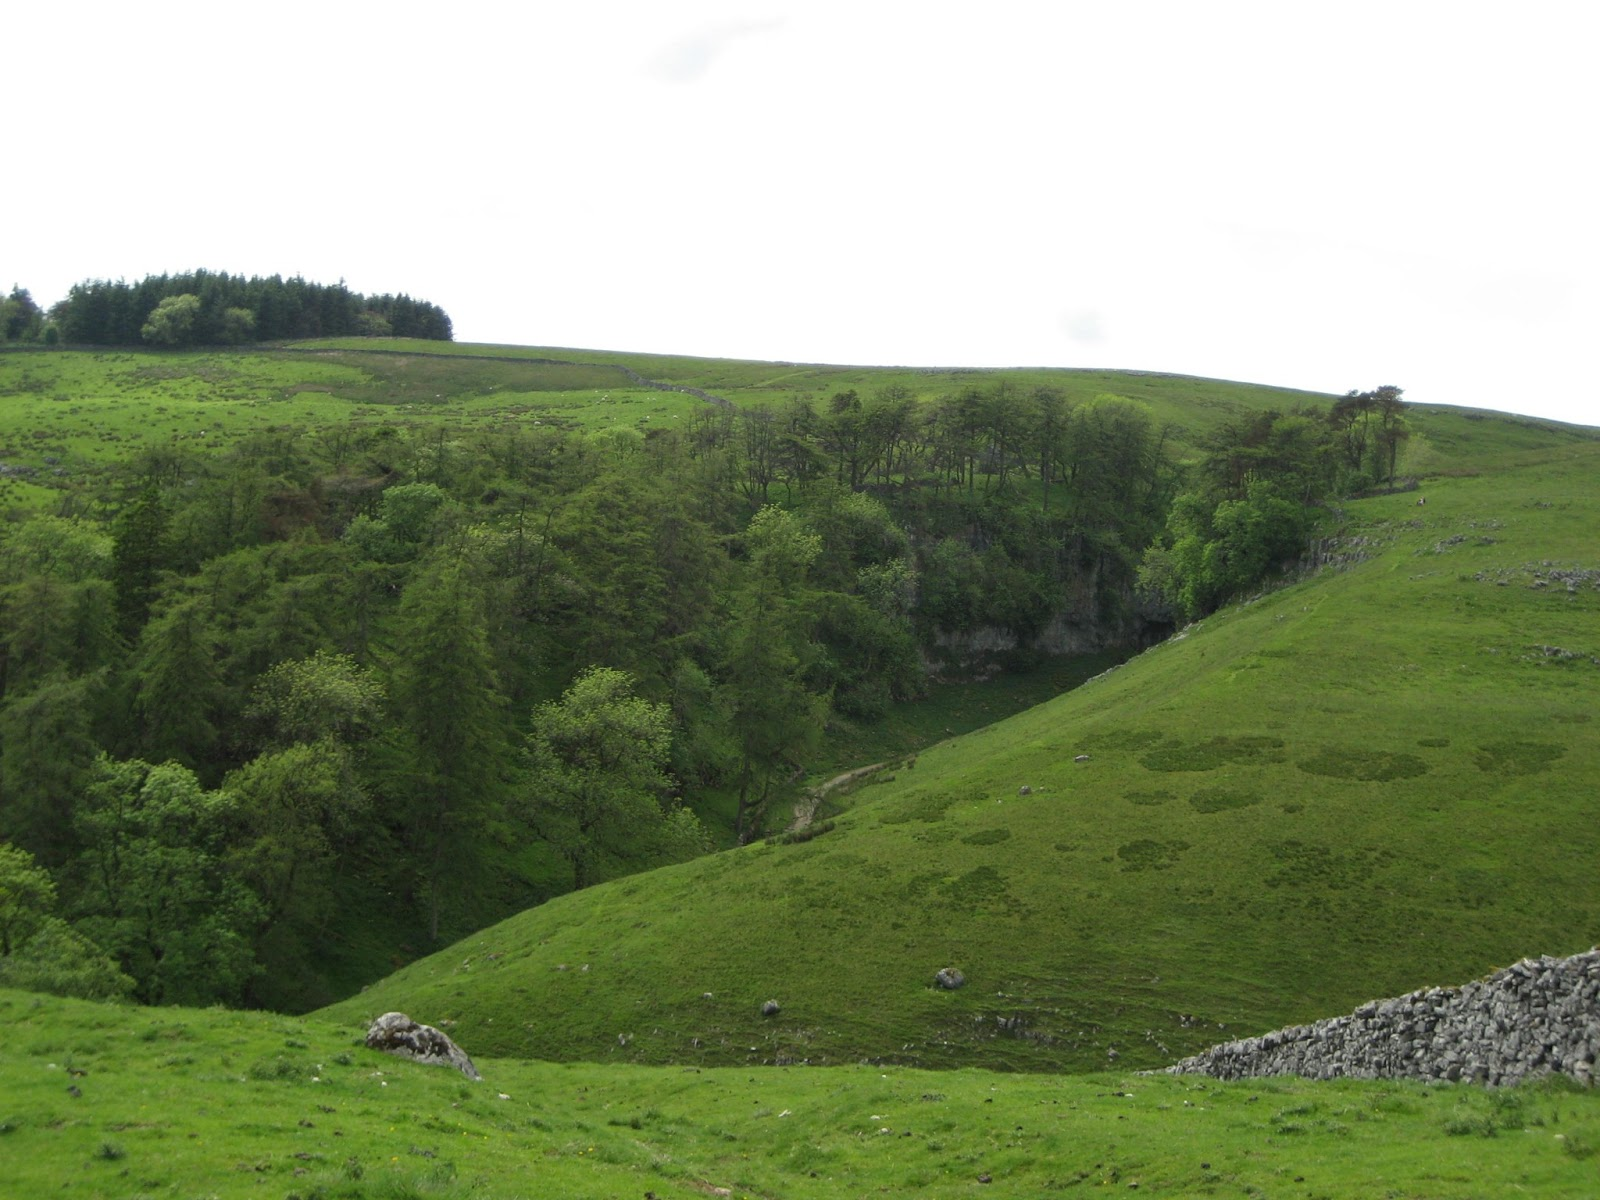 Meltwater channels converge below Trow Gill, where the route through the gorge was met by flow from Clapham Bottoms to the north east, well seen to the left of the wall. Stephen Oldfield